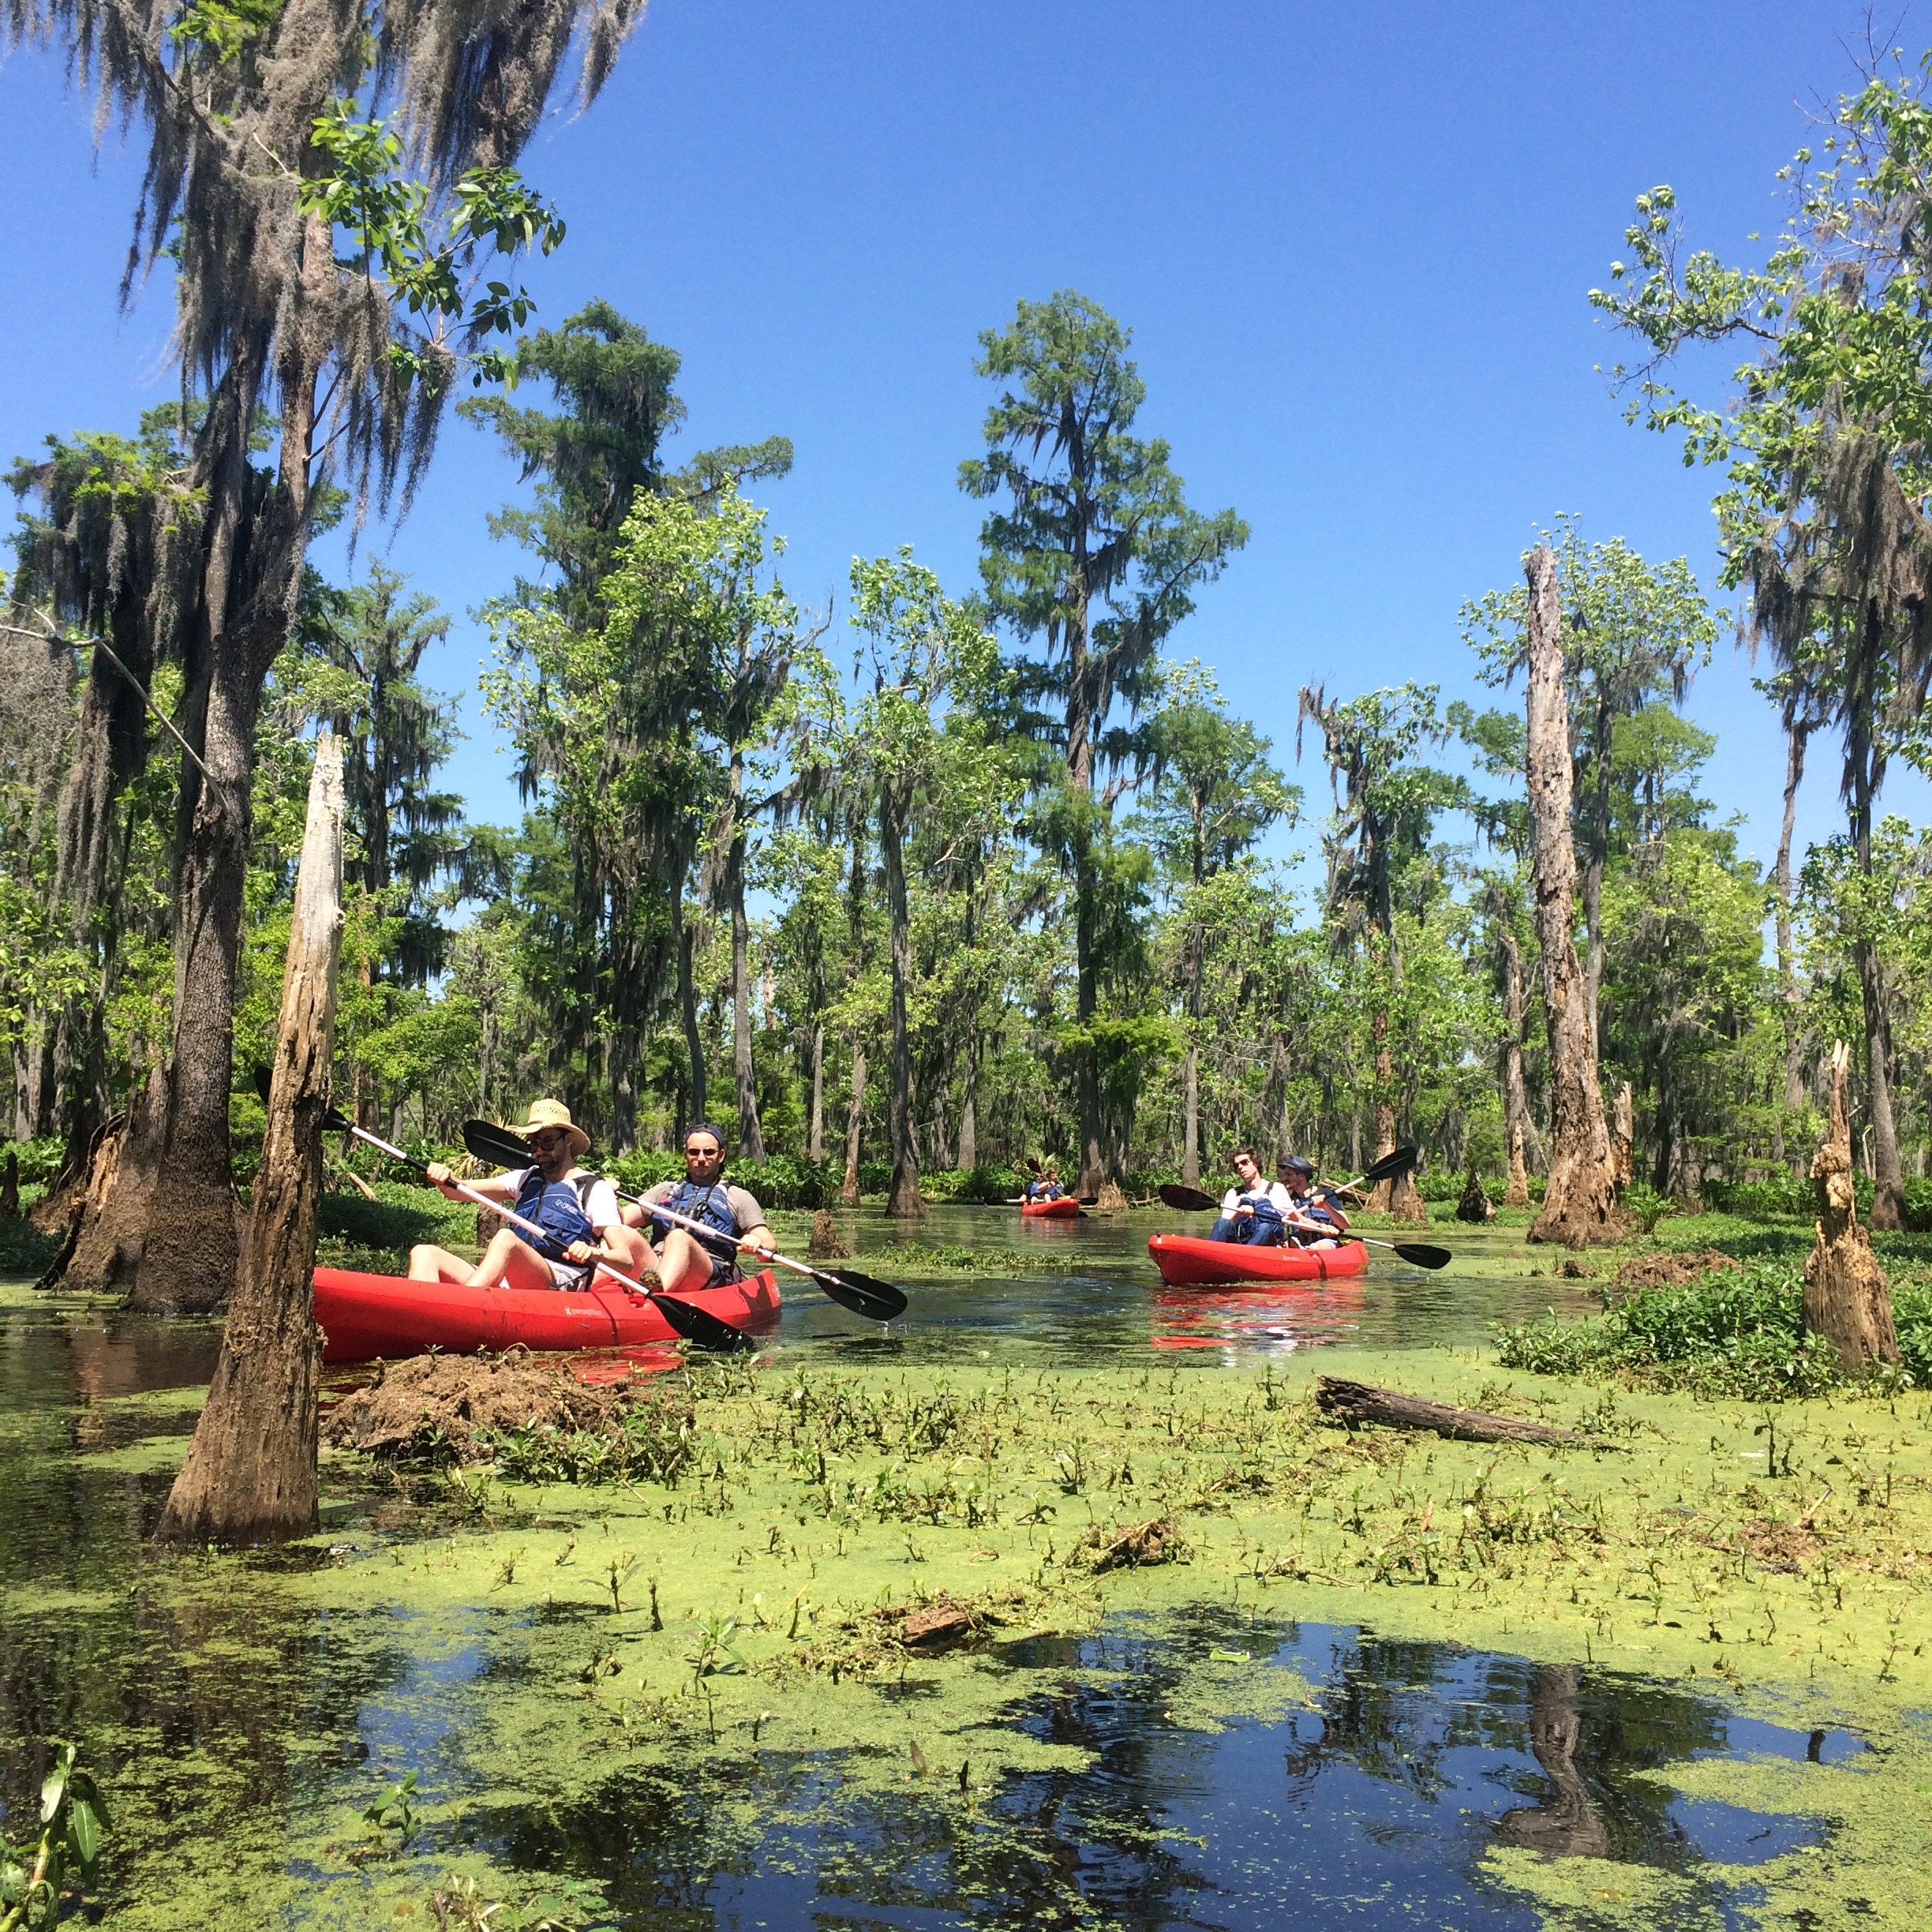 Swamp Tour New Orleans >> New Orleans Kayak Swamp Tour Pearl River La 70452